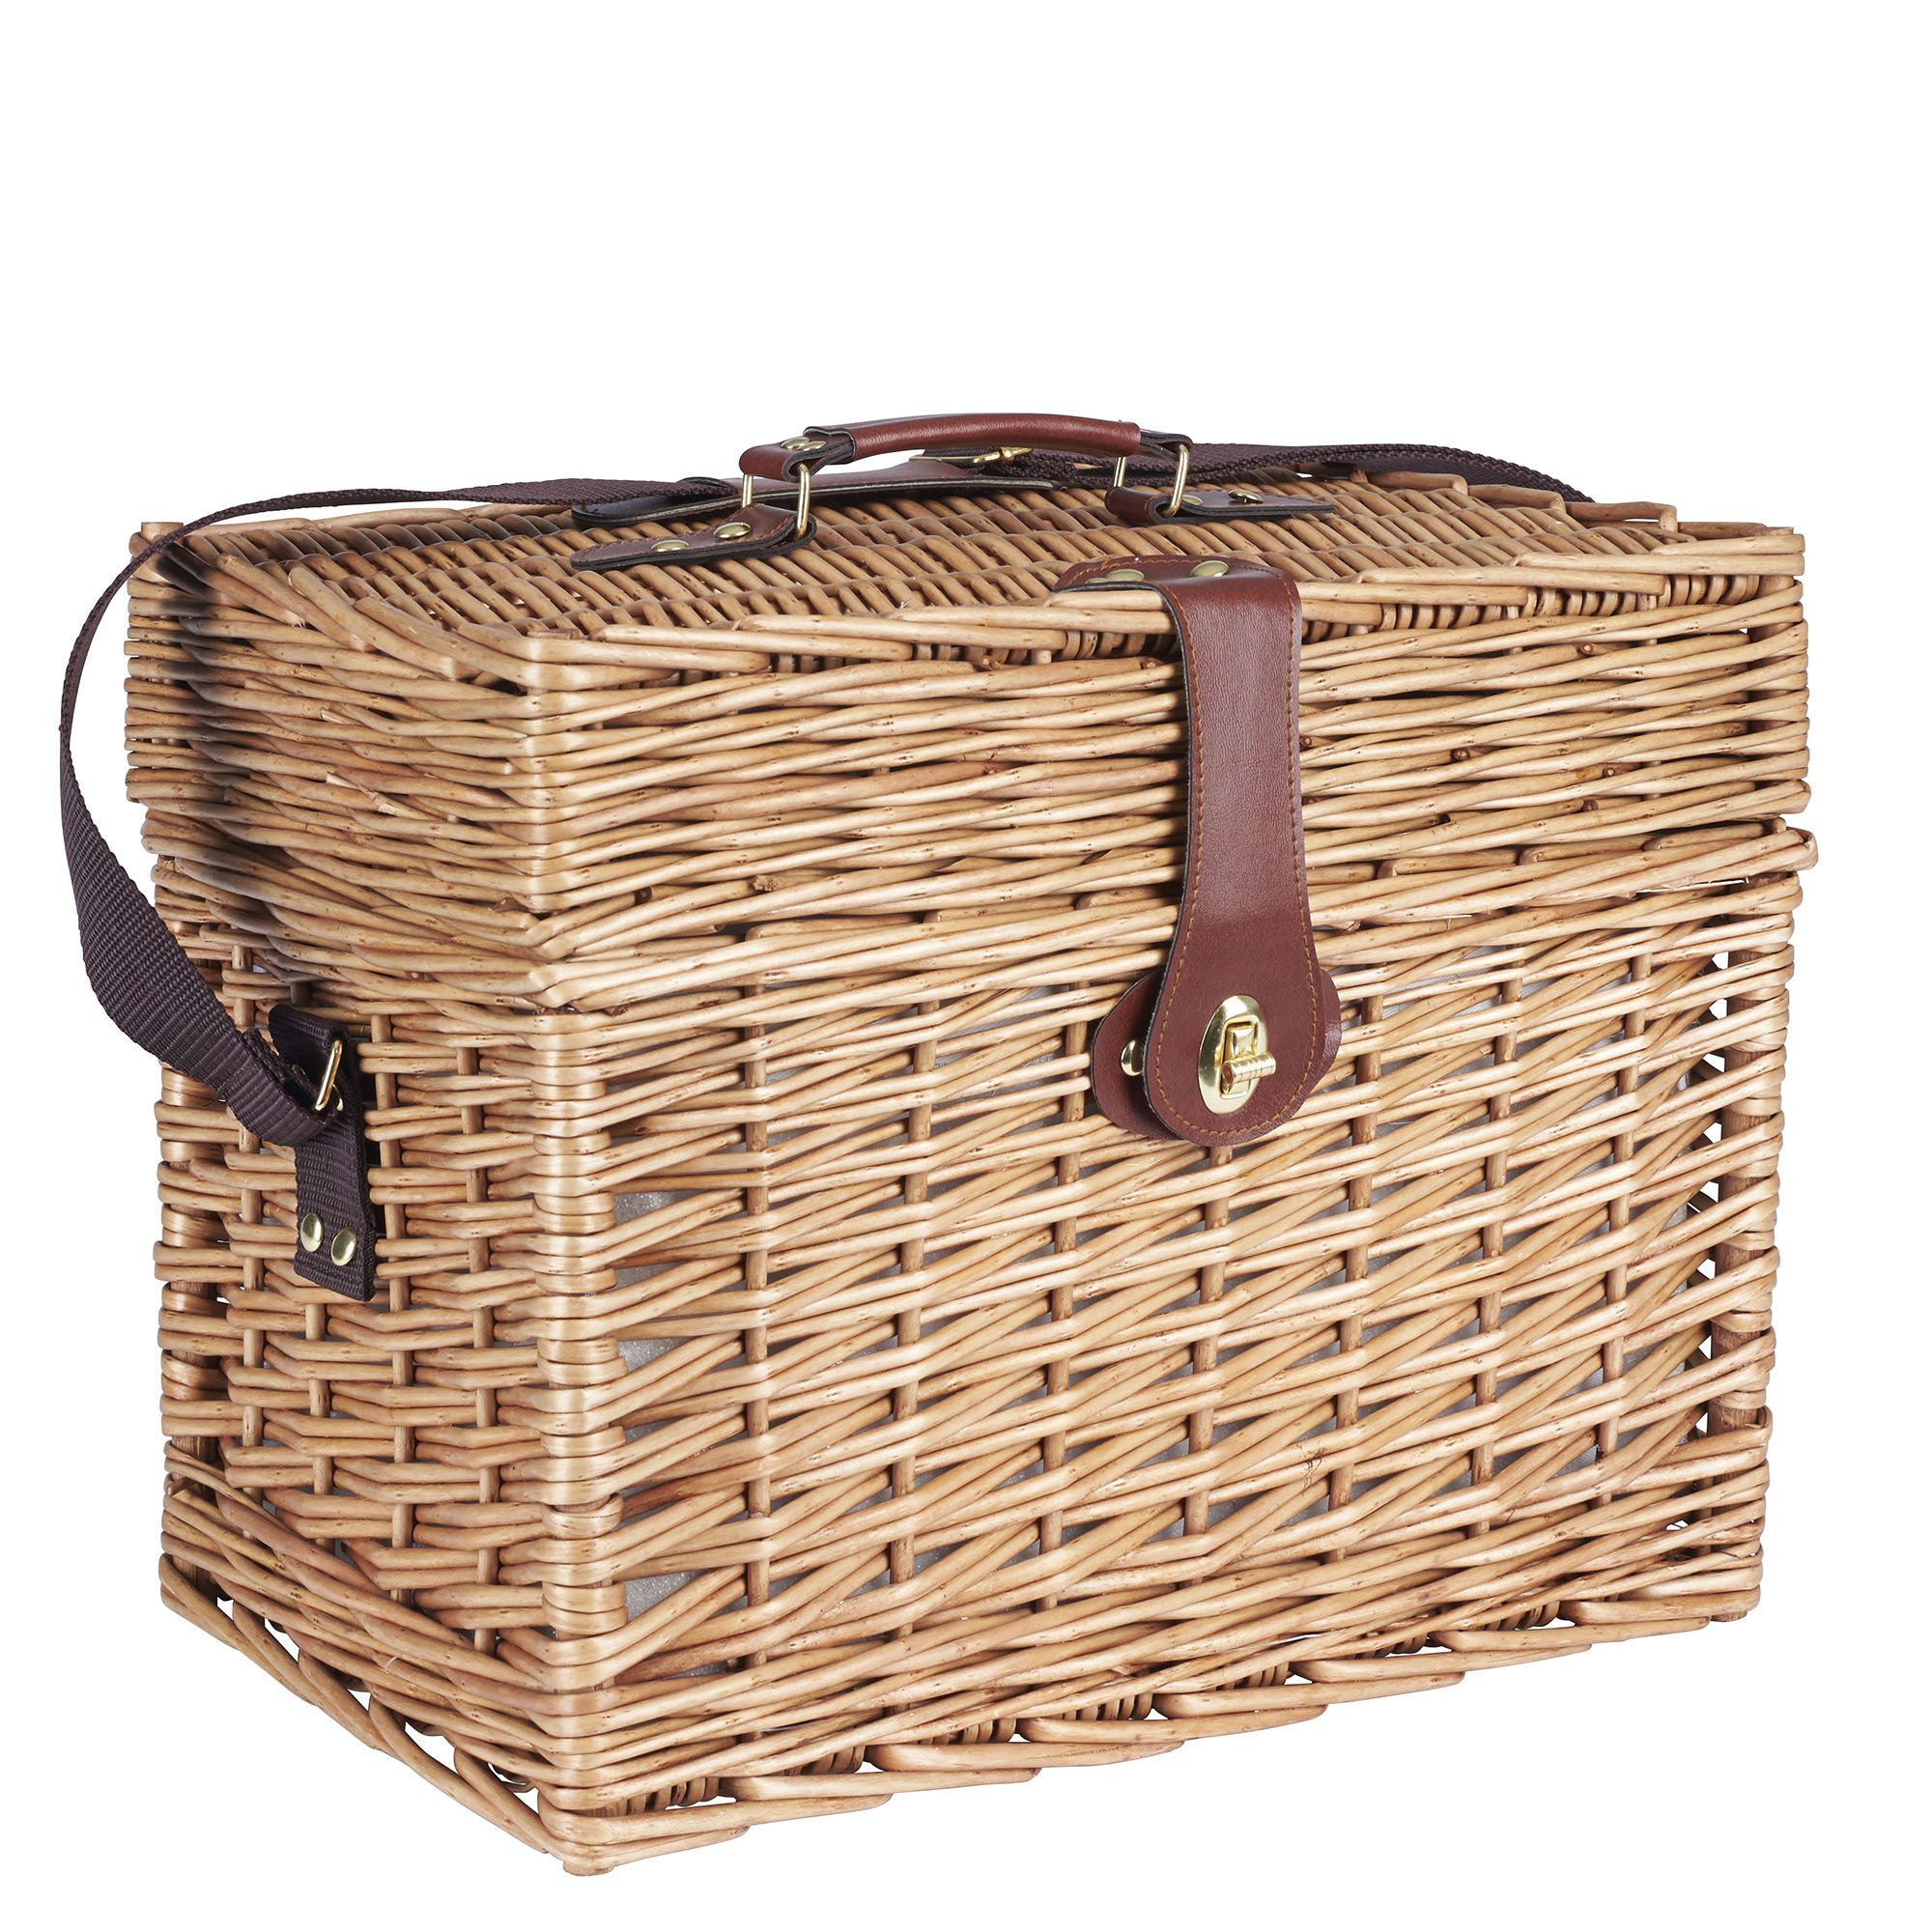 Household Essentials ML-2650 Walden Picnic Basket with Picnic Blanket